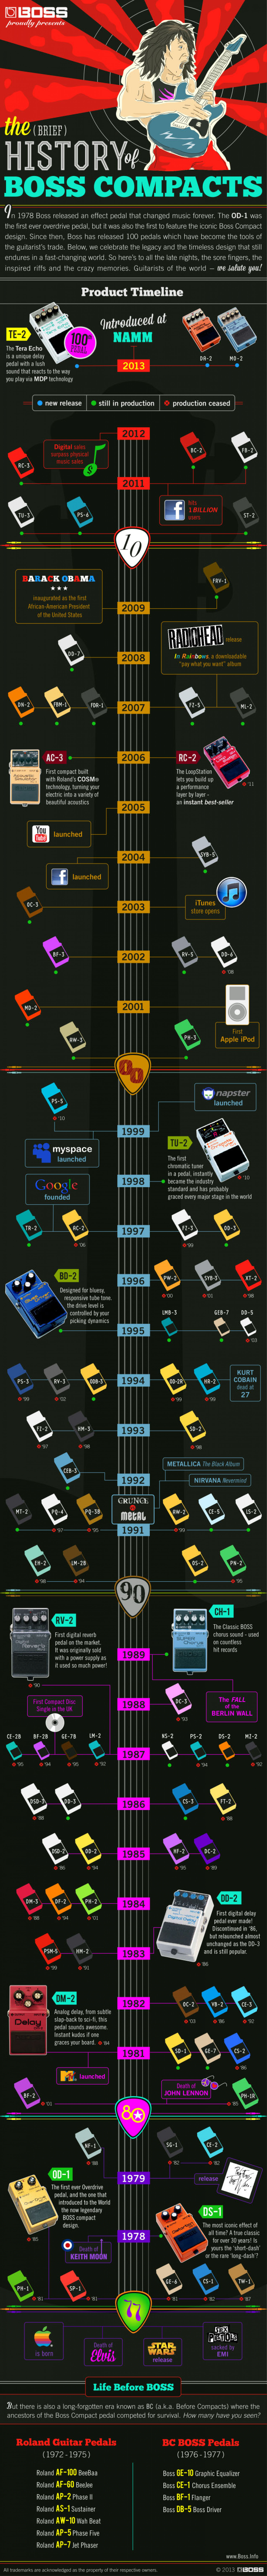 The History of BOSS Compact Pedals | Roland Boss Infographic